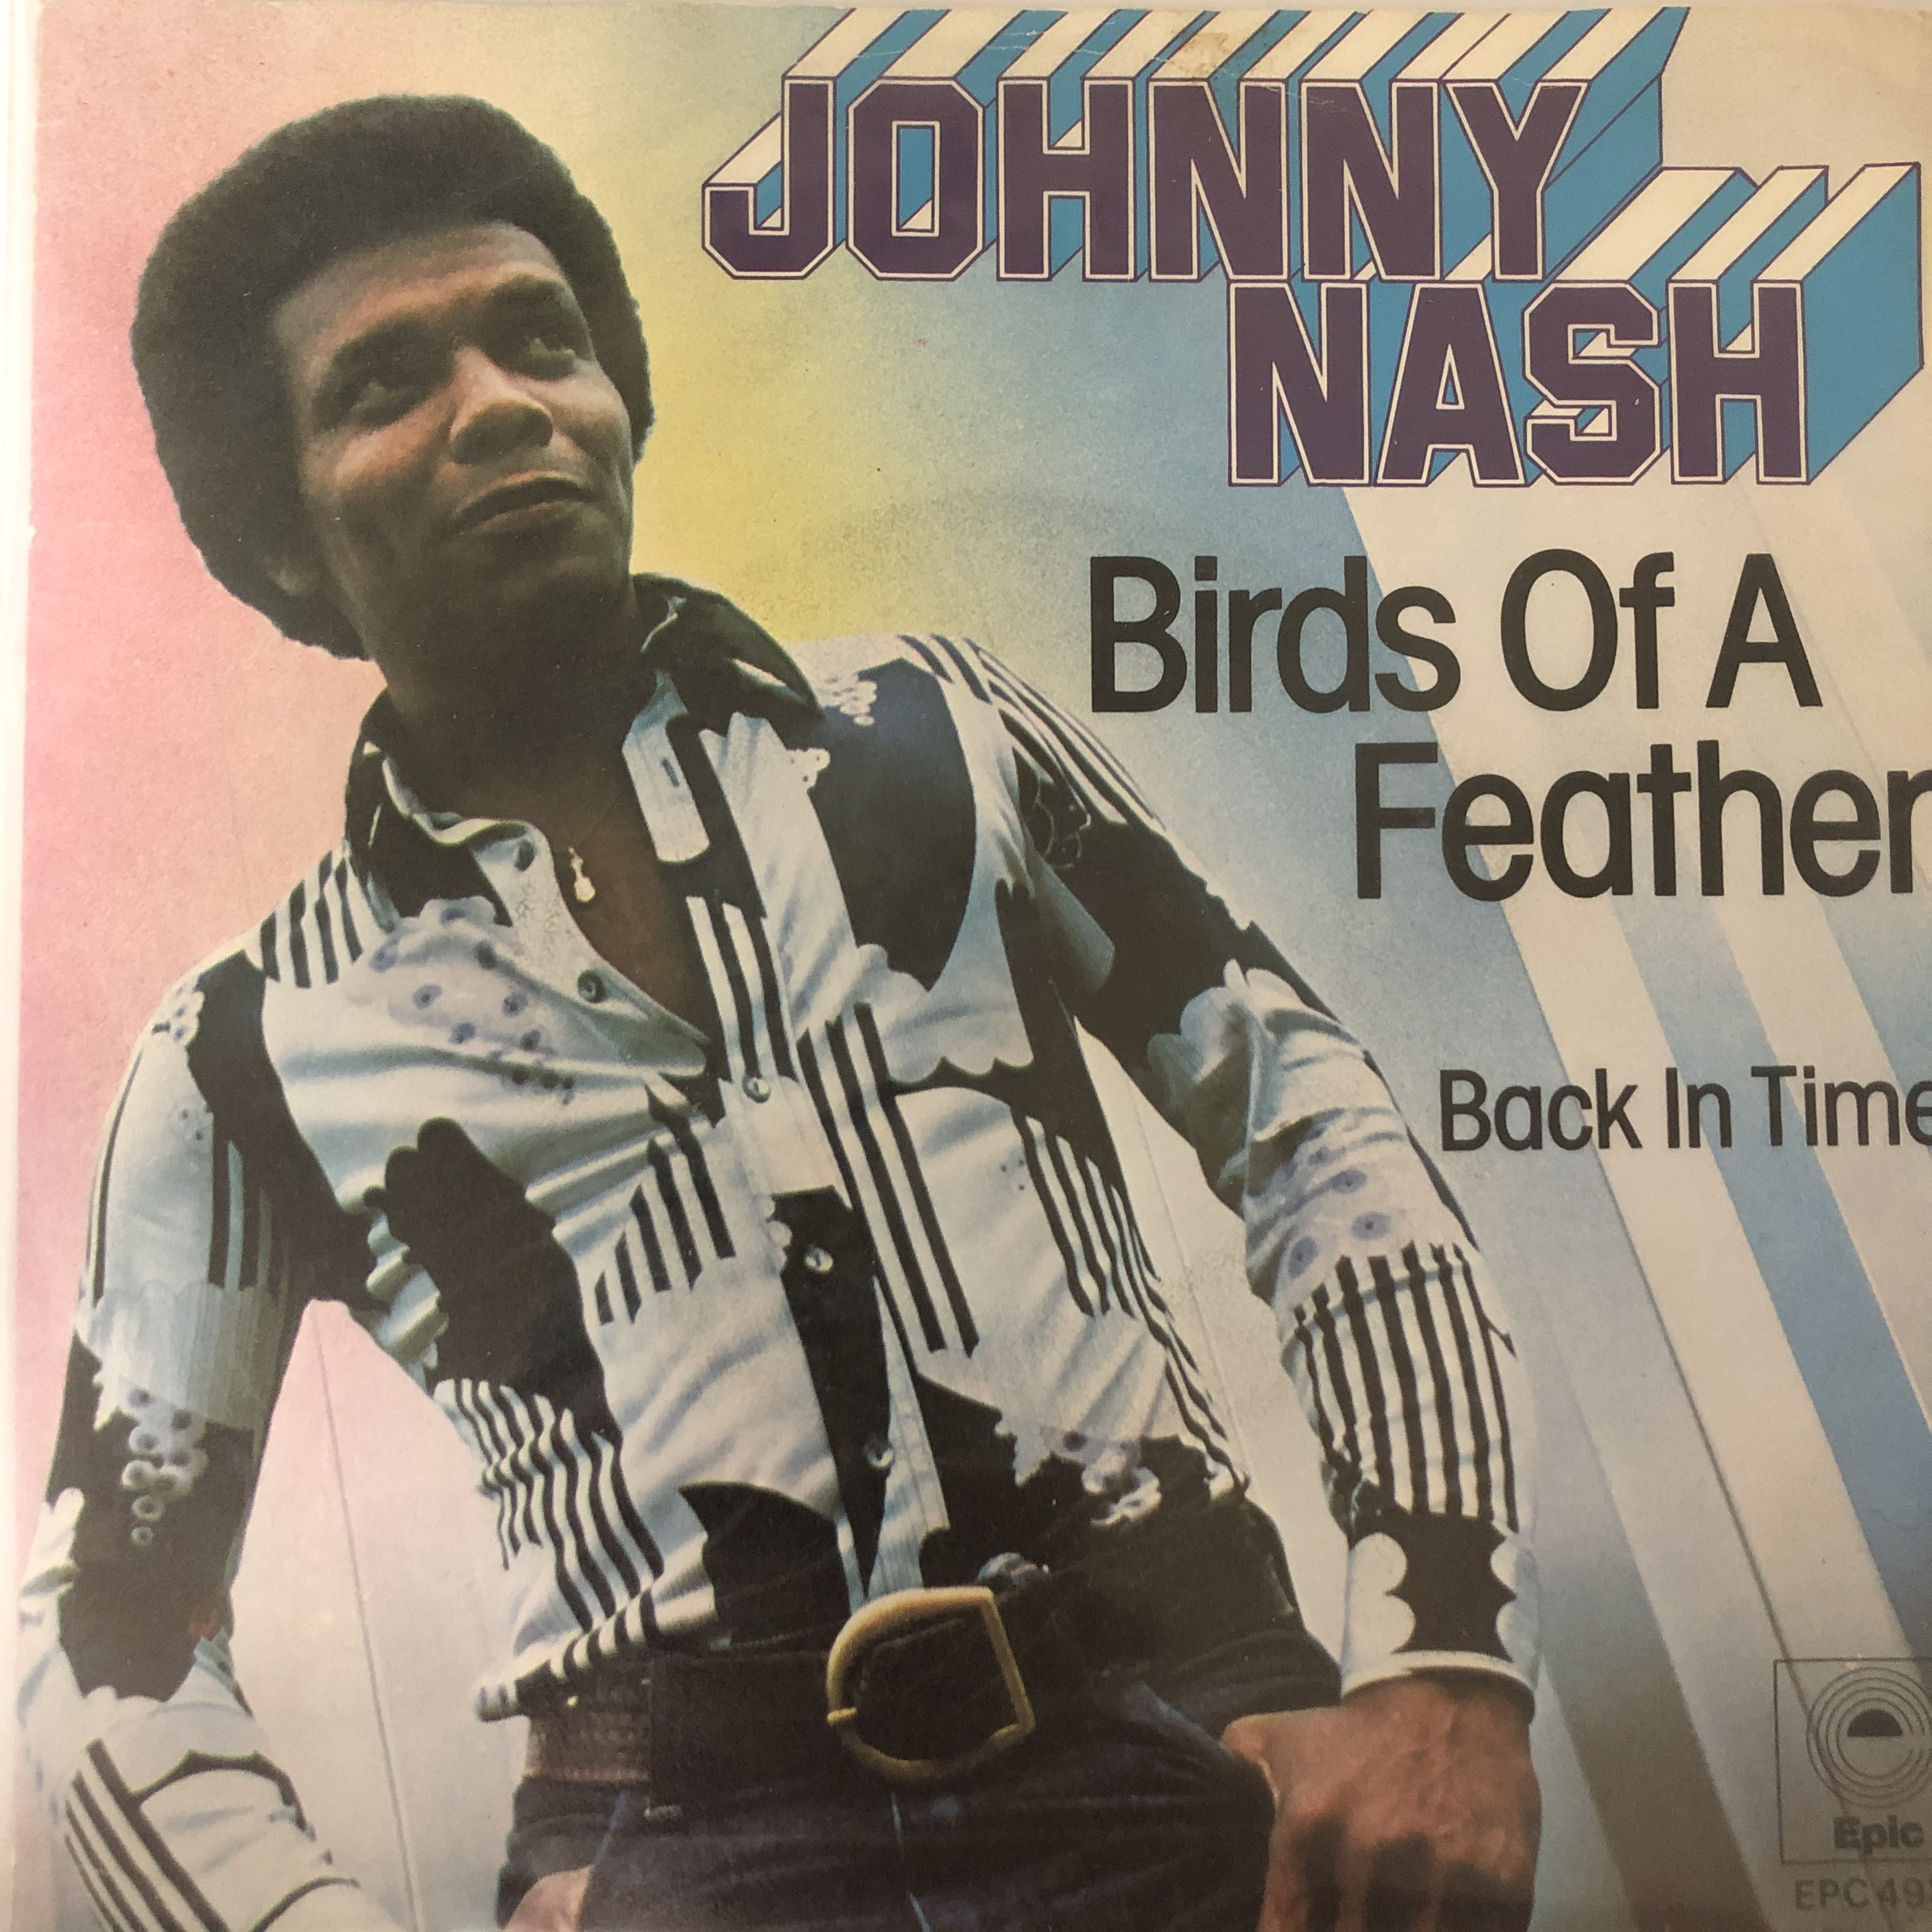 Johnny Nash - Birds Of A Feather 【7-20529】